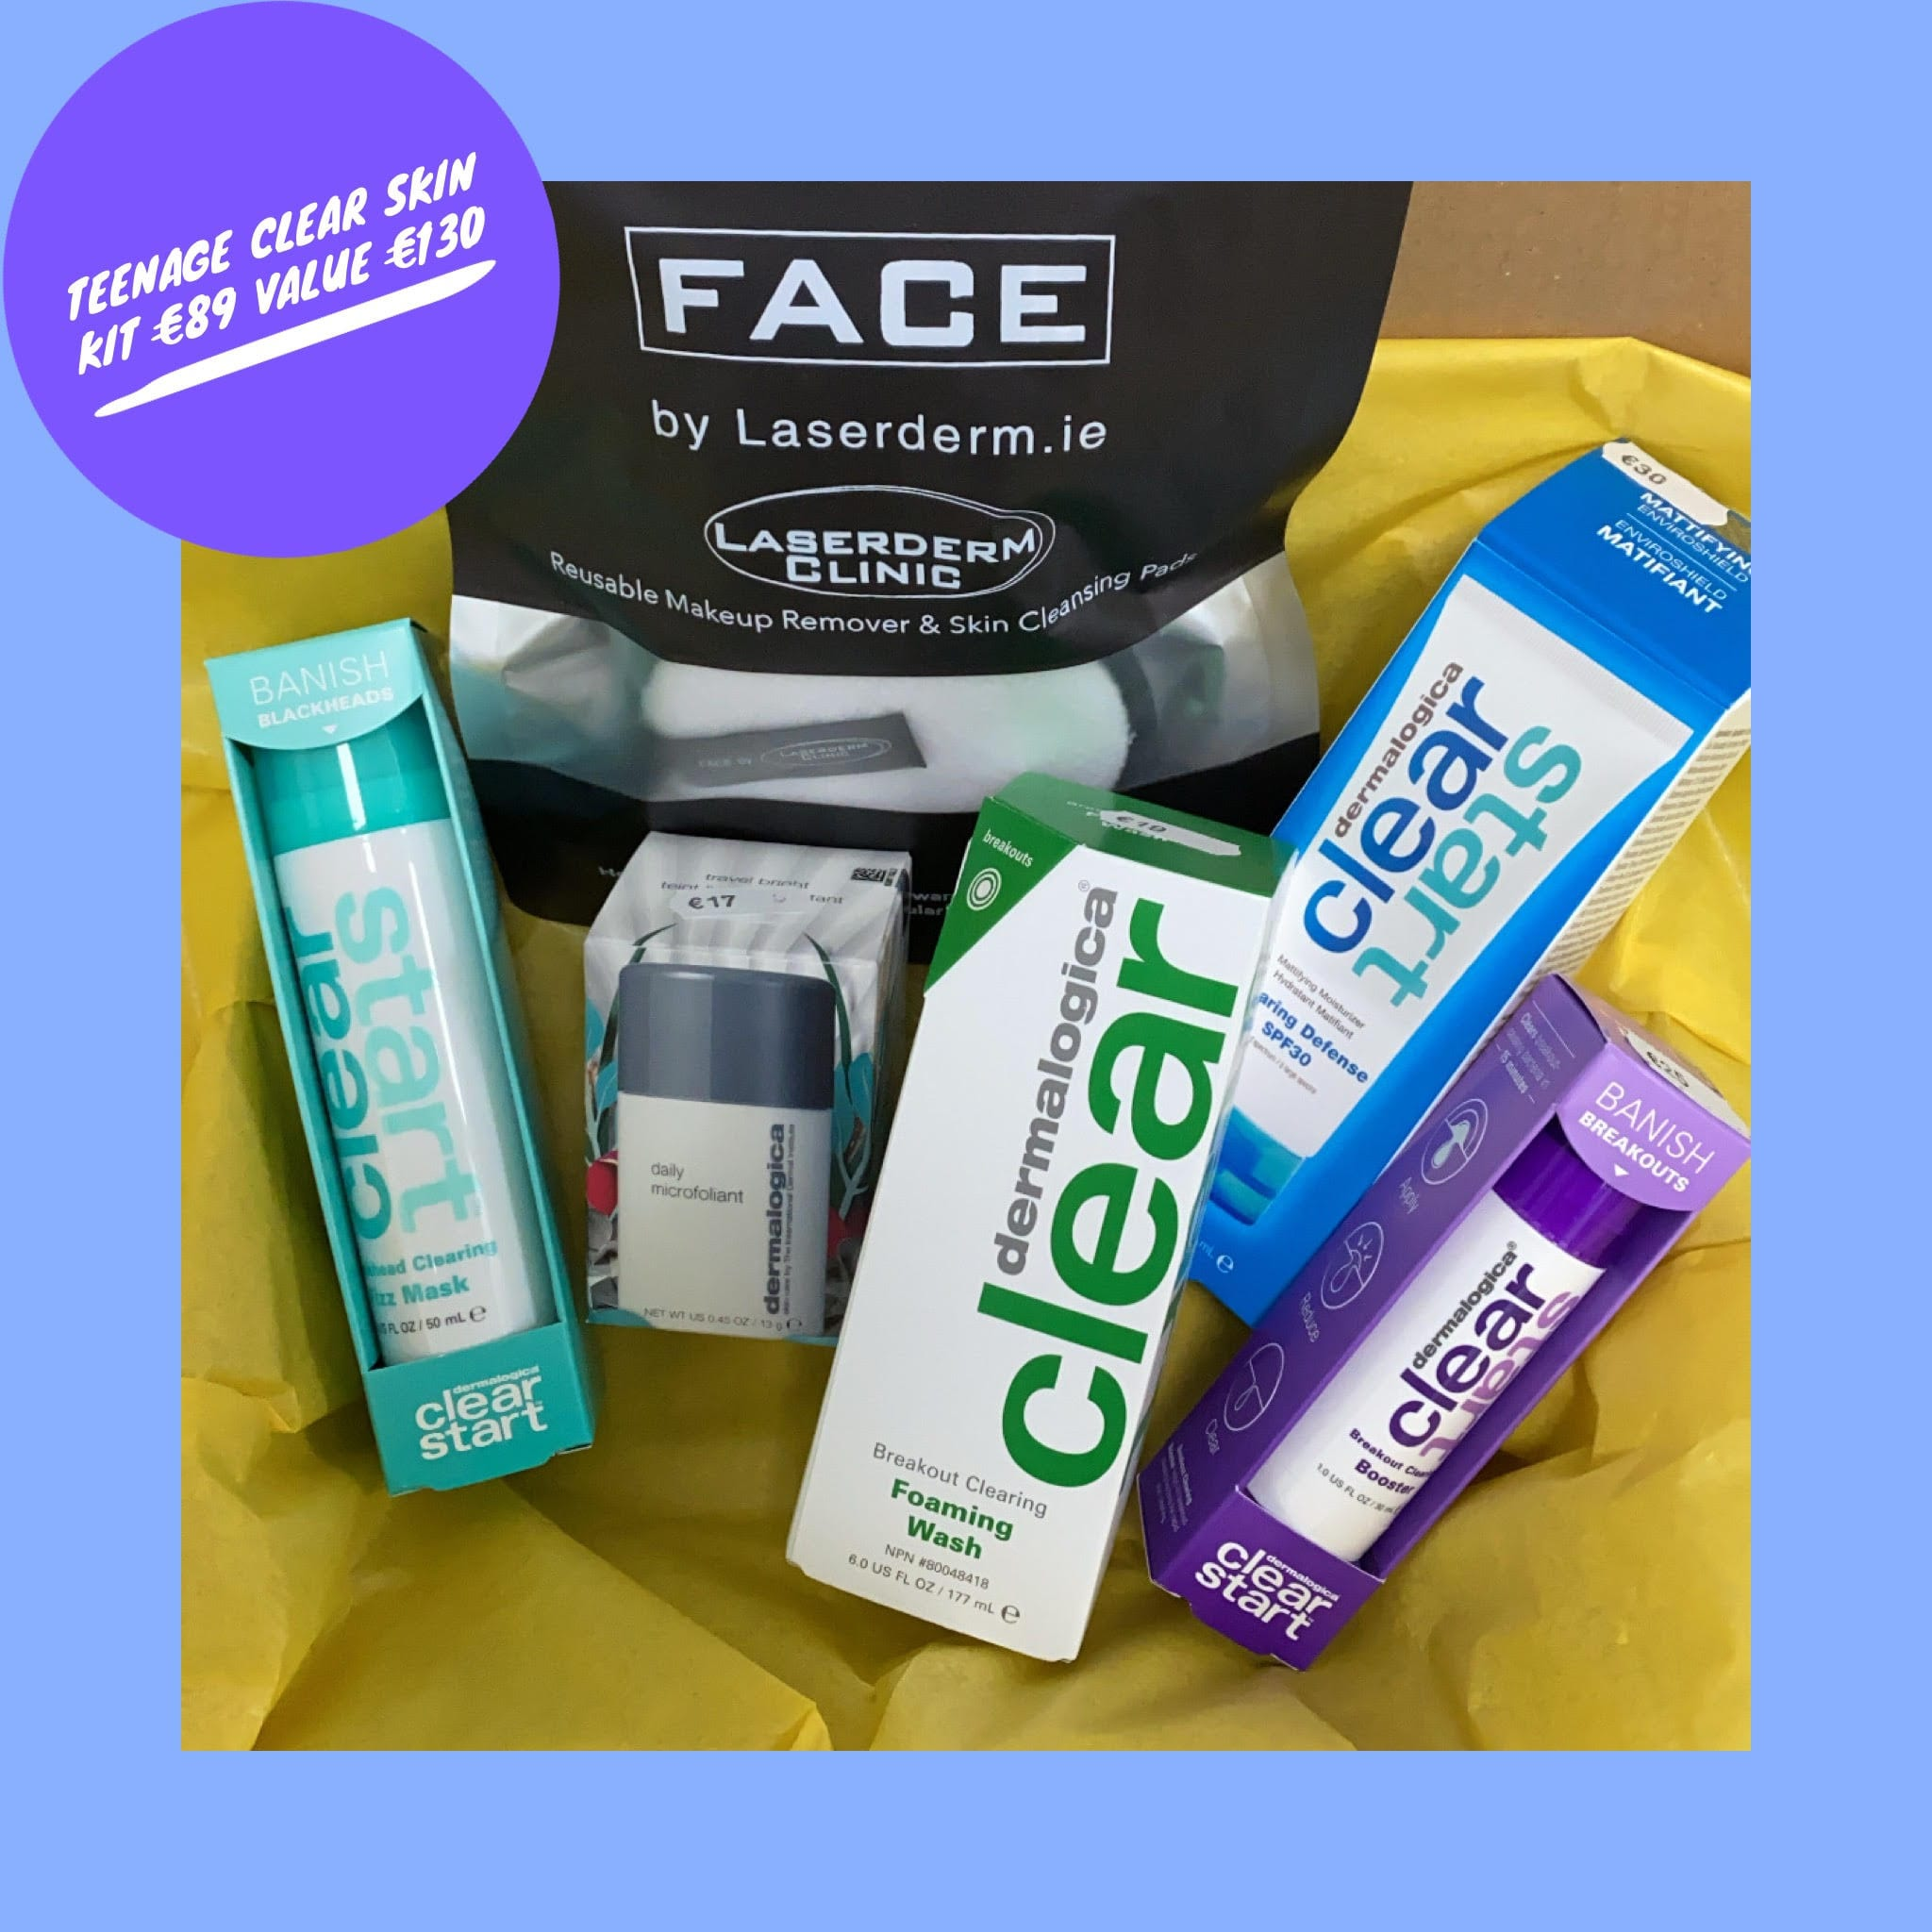 a.    Teenage Clear Skin Kit (promotion price)